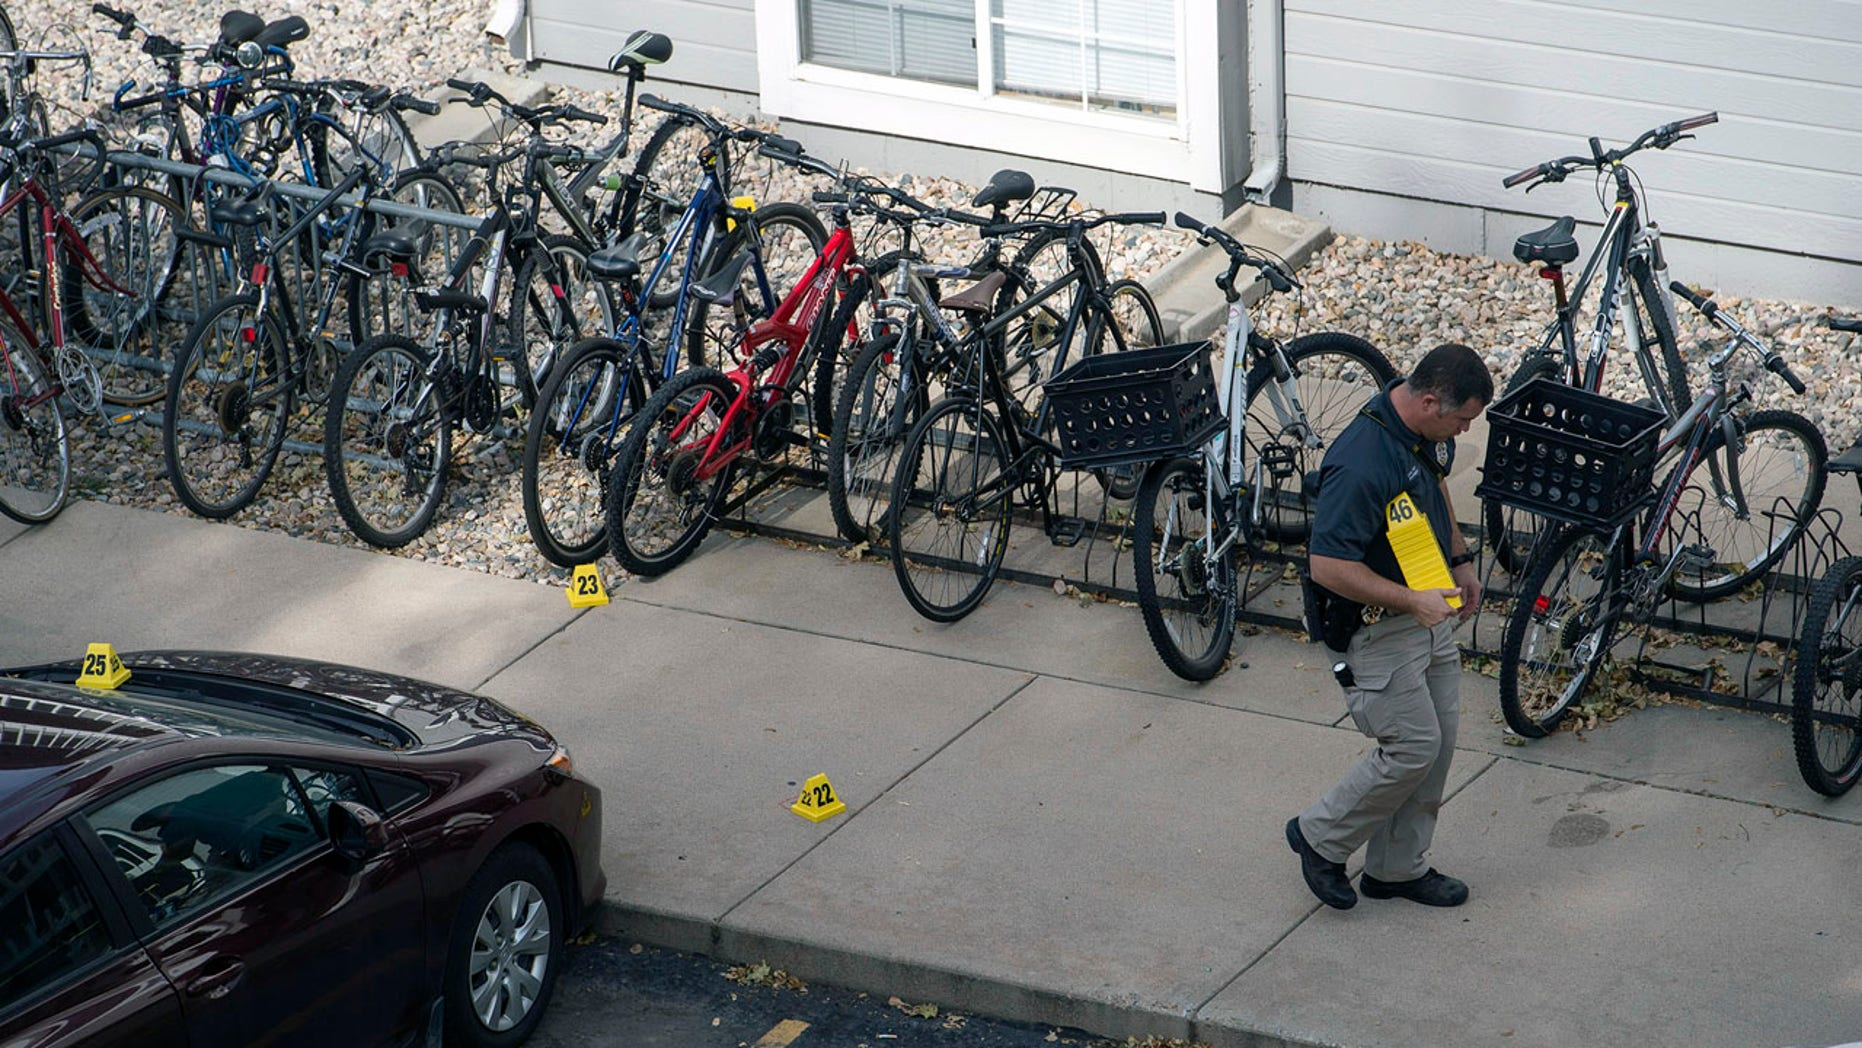 Thursday Morning S Shooting Killed Three People Including A Female Colorado State University Student